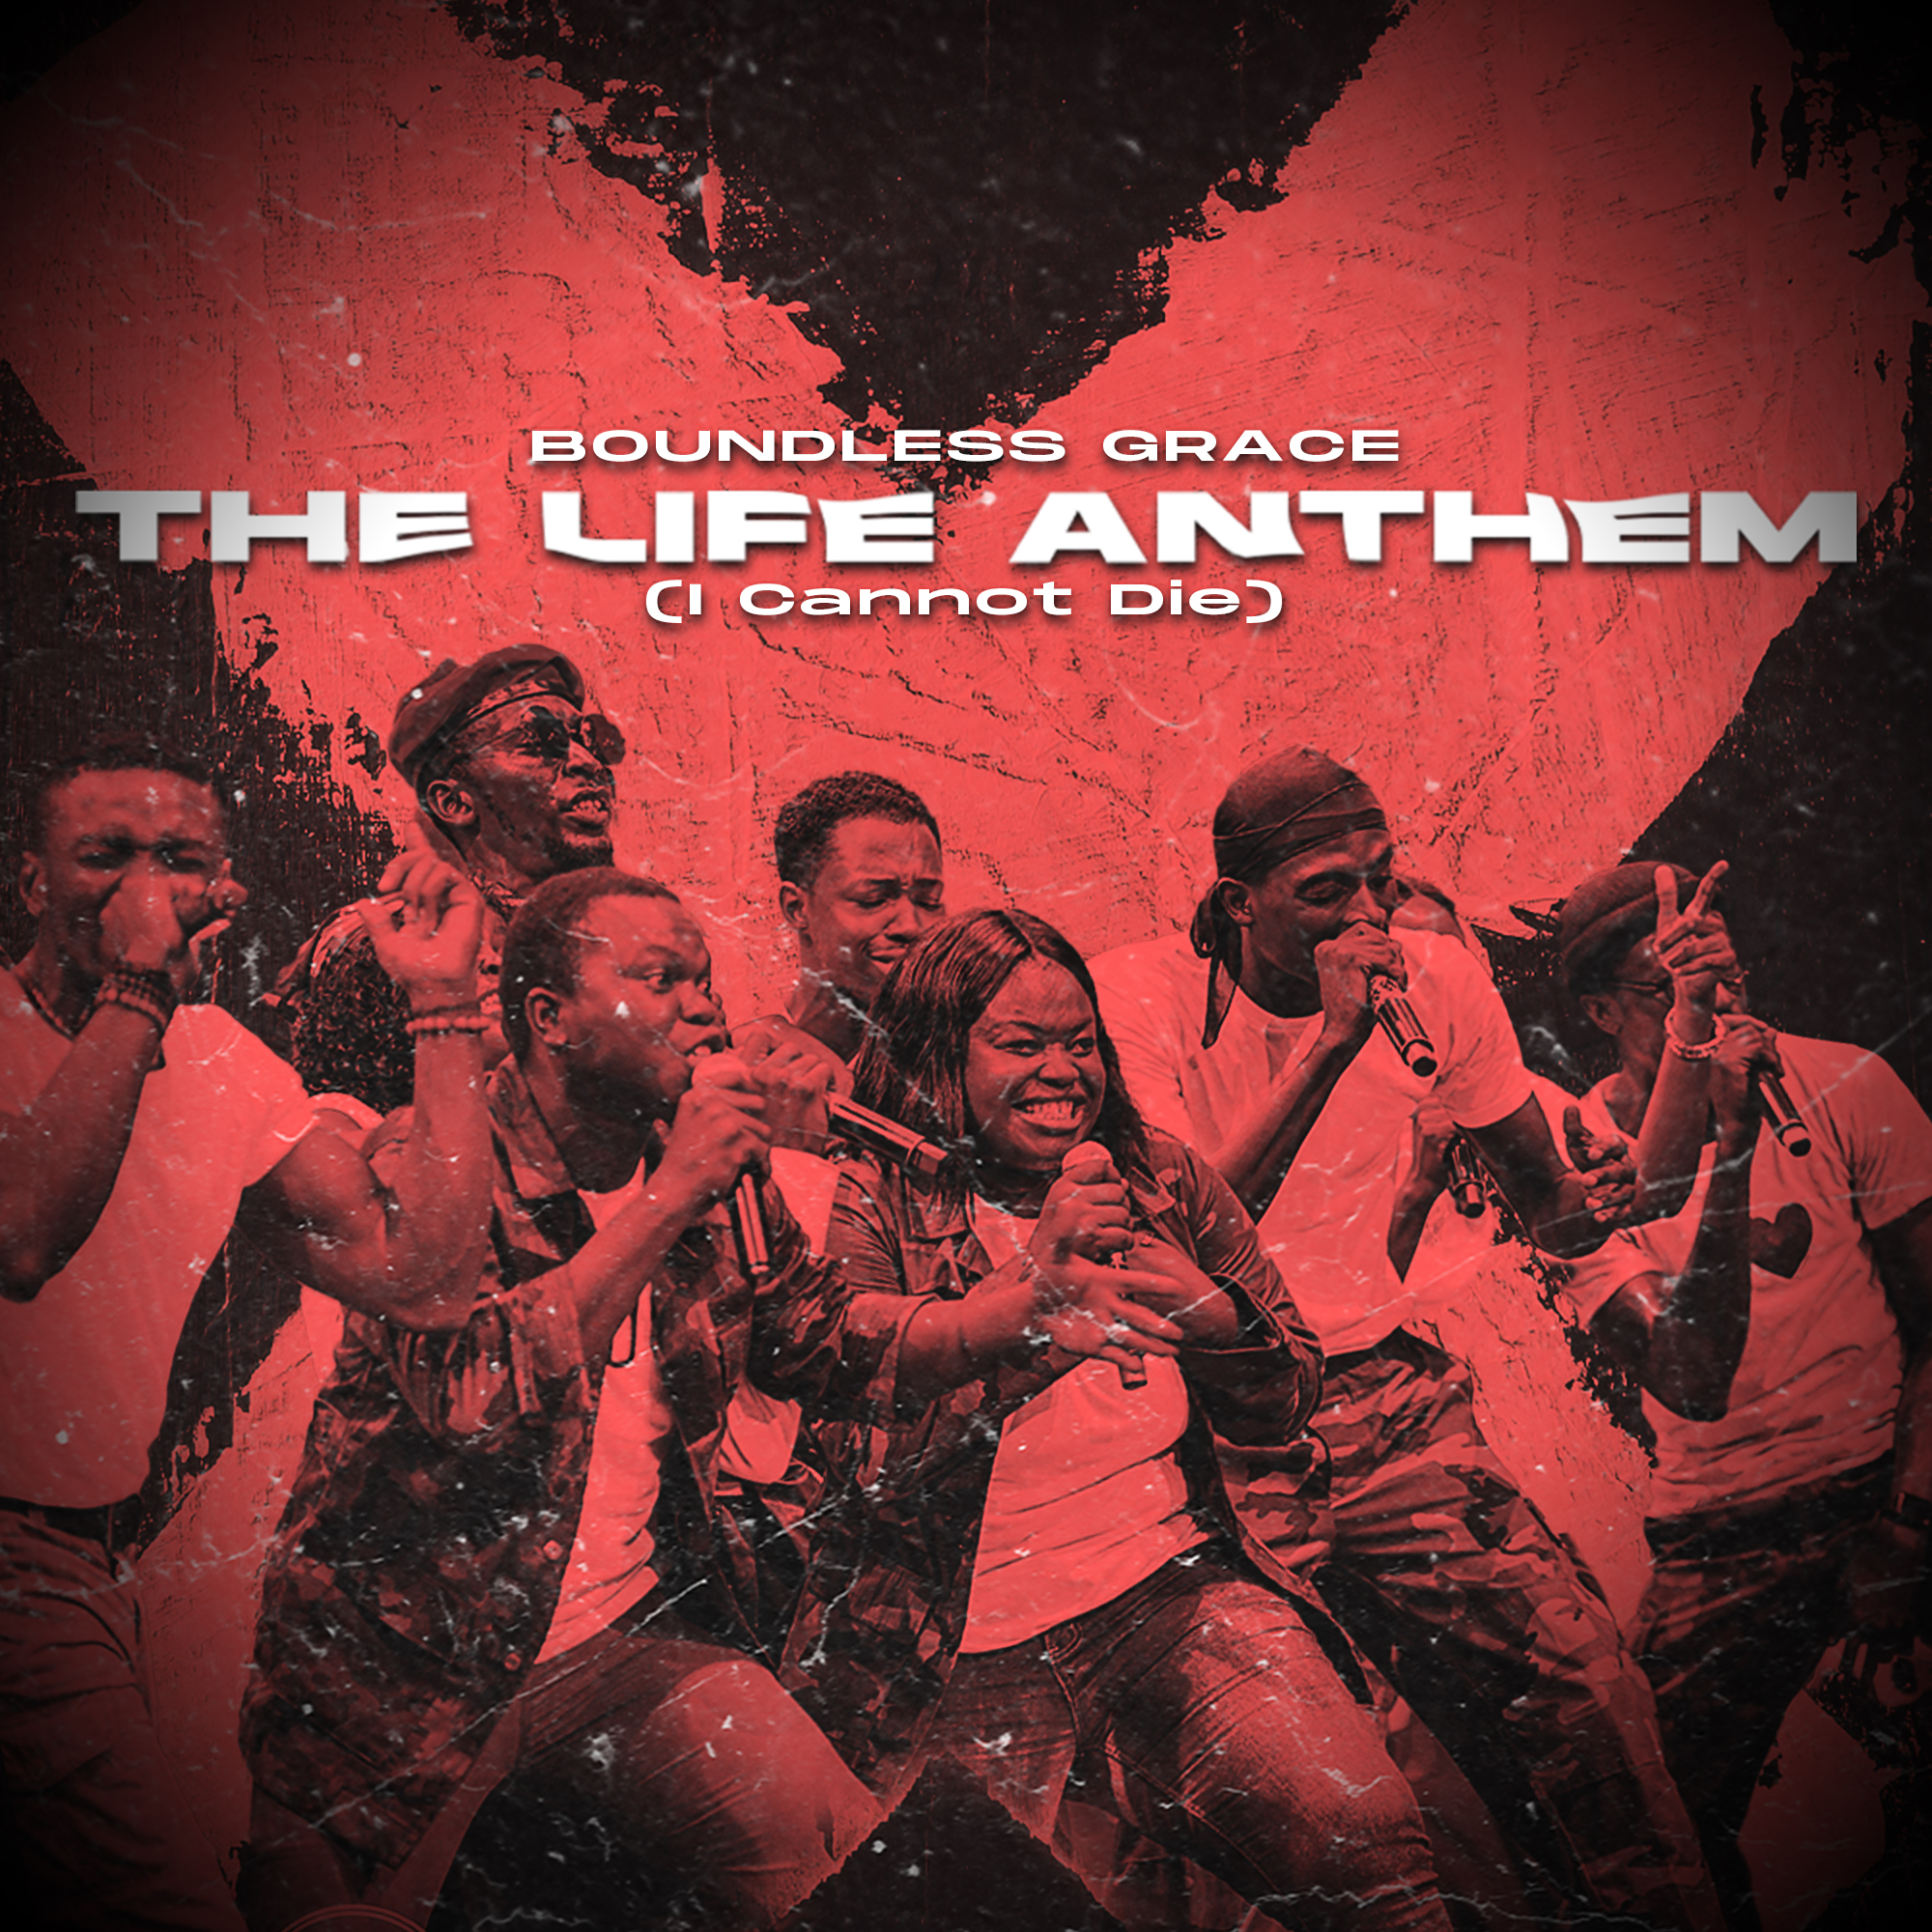 The Life Anthem (I Cannot Die)